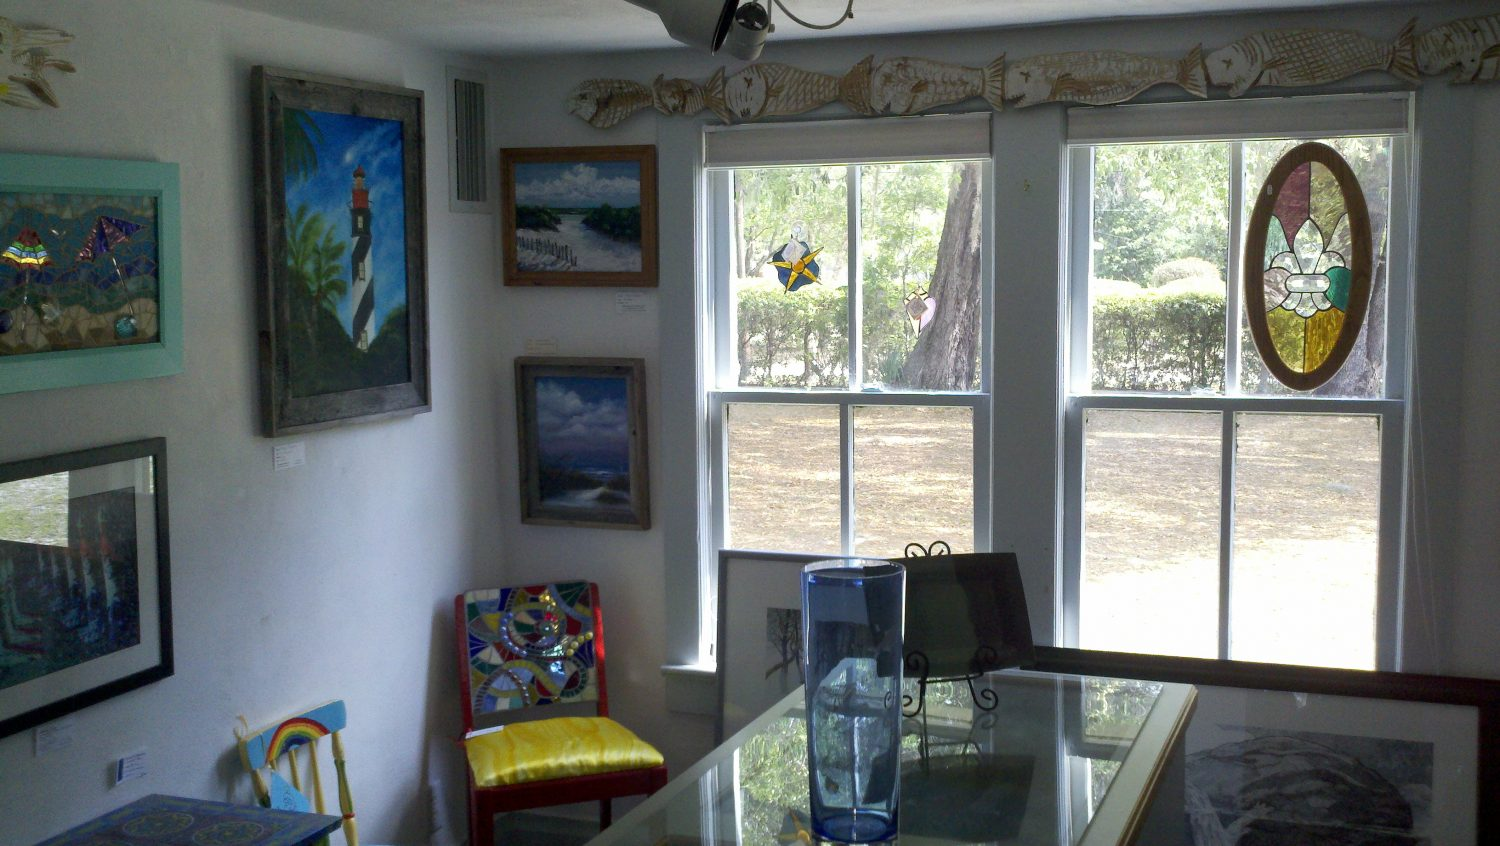 One of the room displaying artwork at Shake Rag Art & Culture Center.